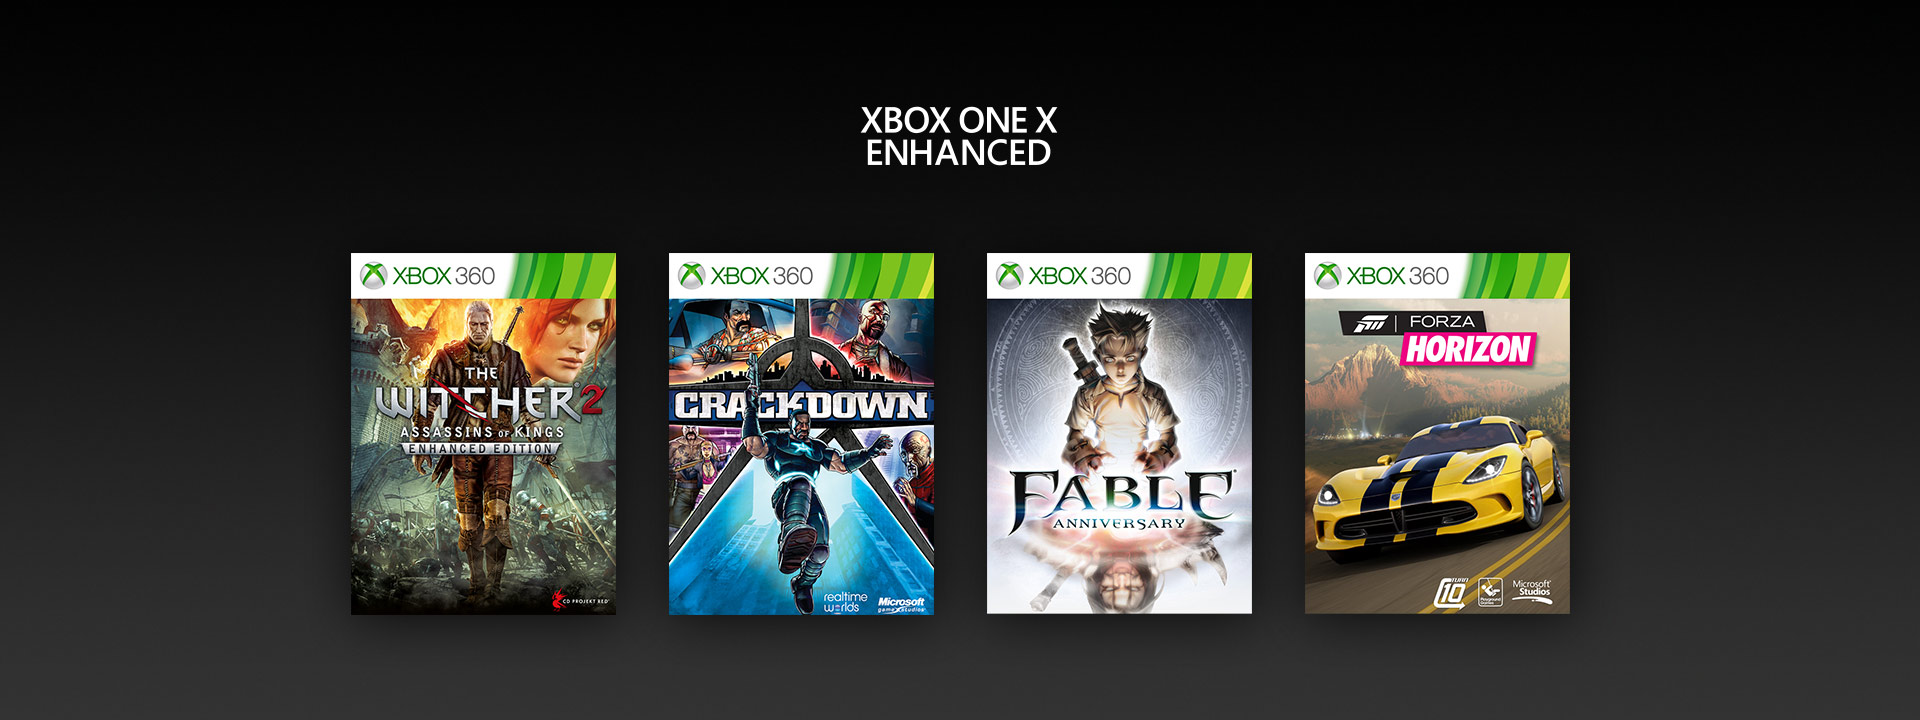 Xbox One X Enhanced logo - Witcher 2 Crackdown Fable Anniversary Forza Horizon boxshots